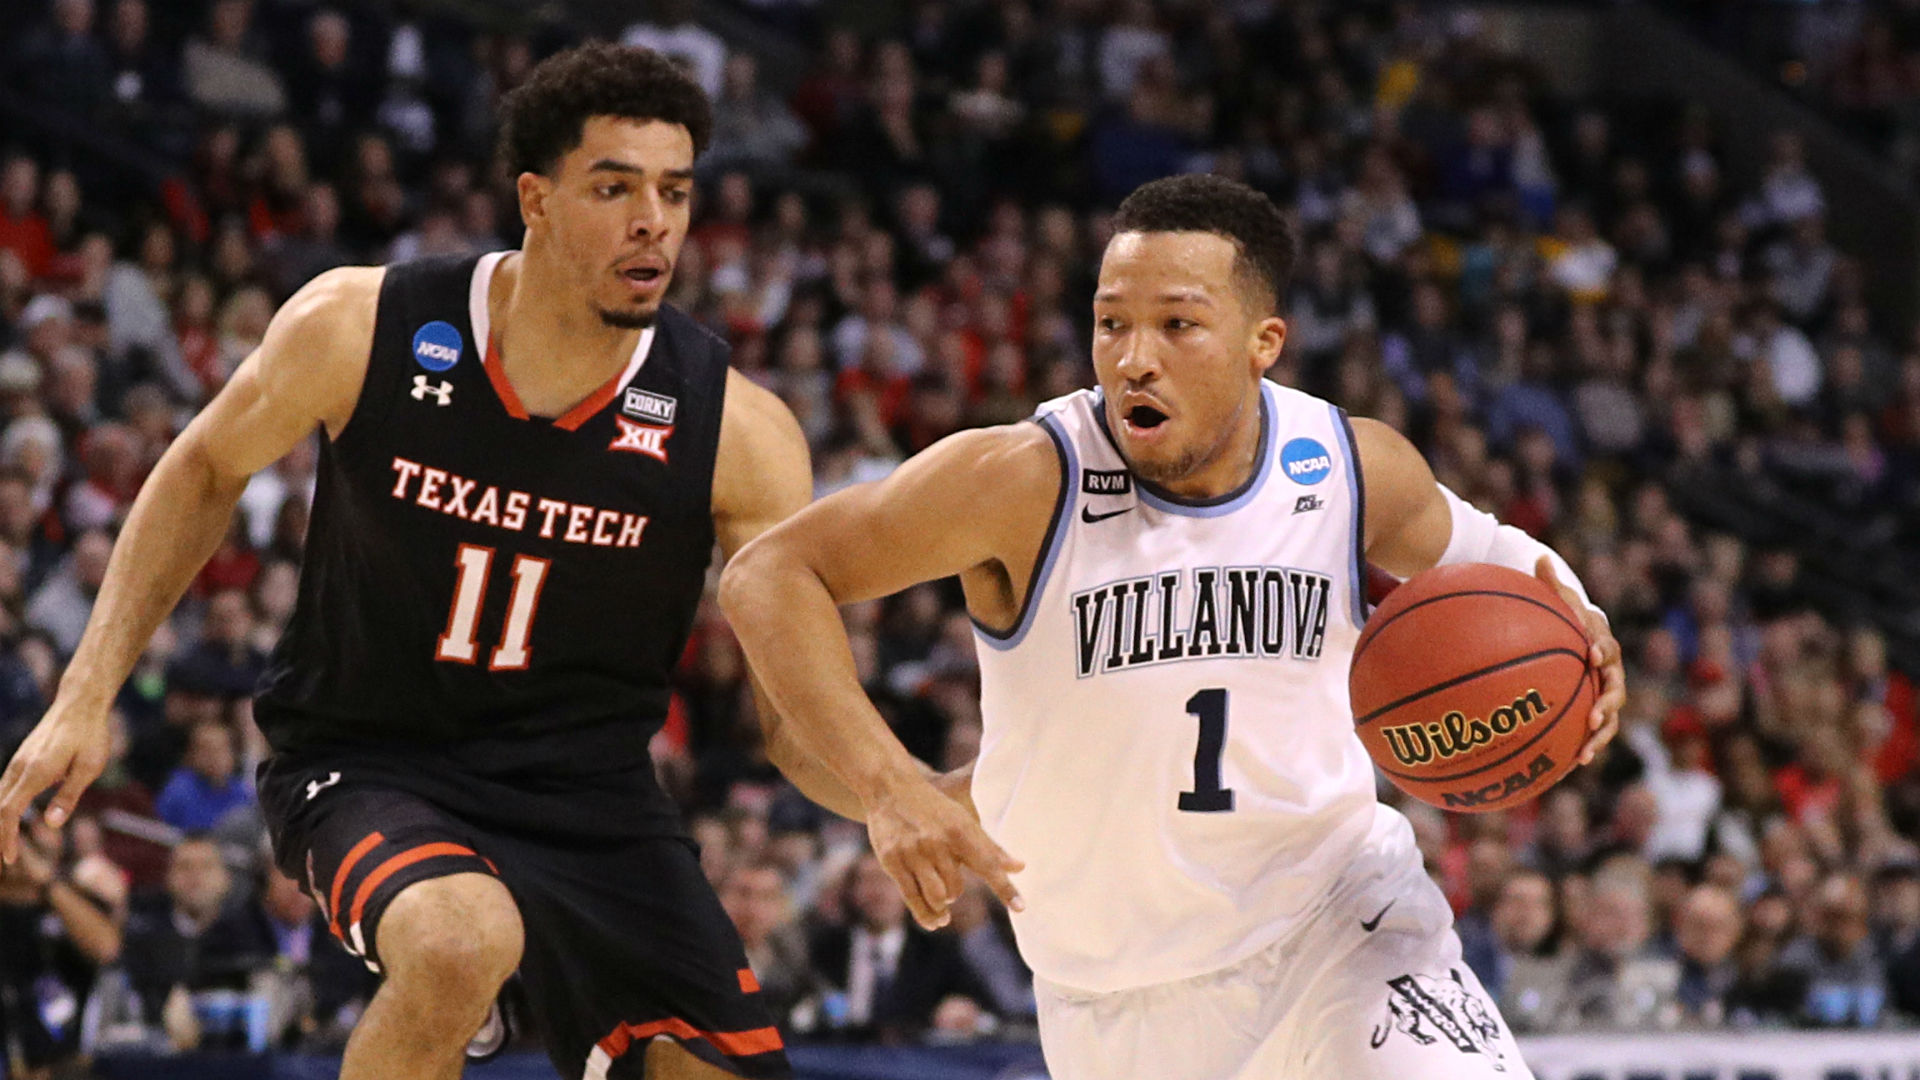 Villanova's Jalen Brunson is AP men's college player of the year